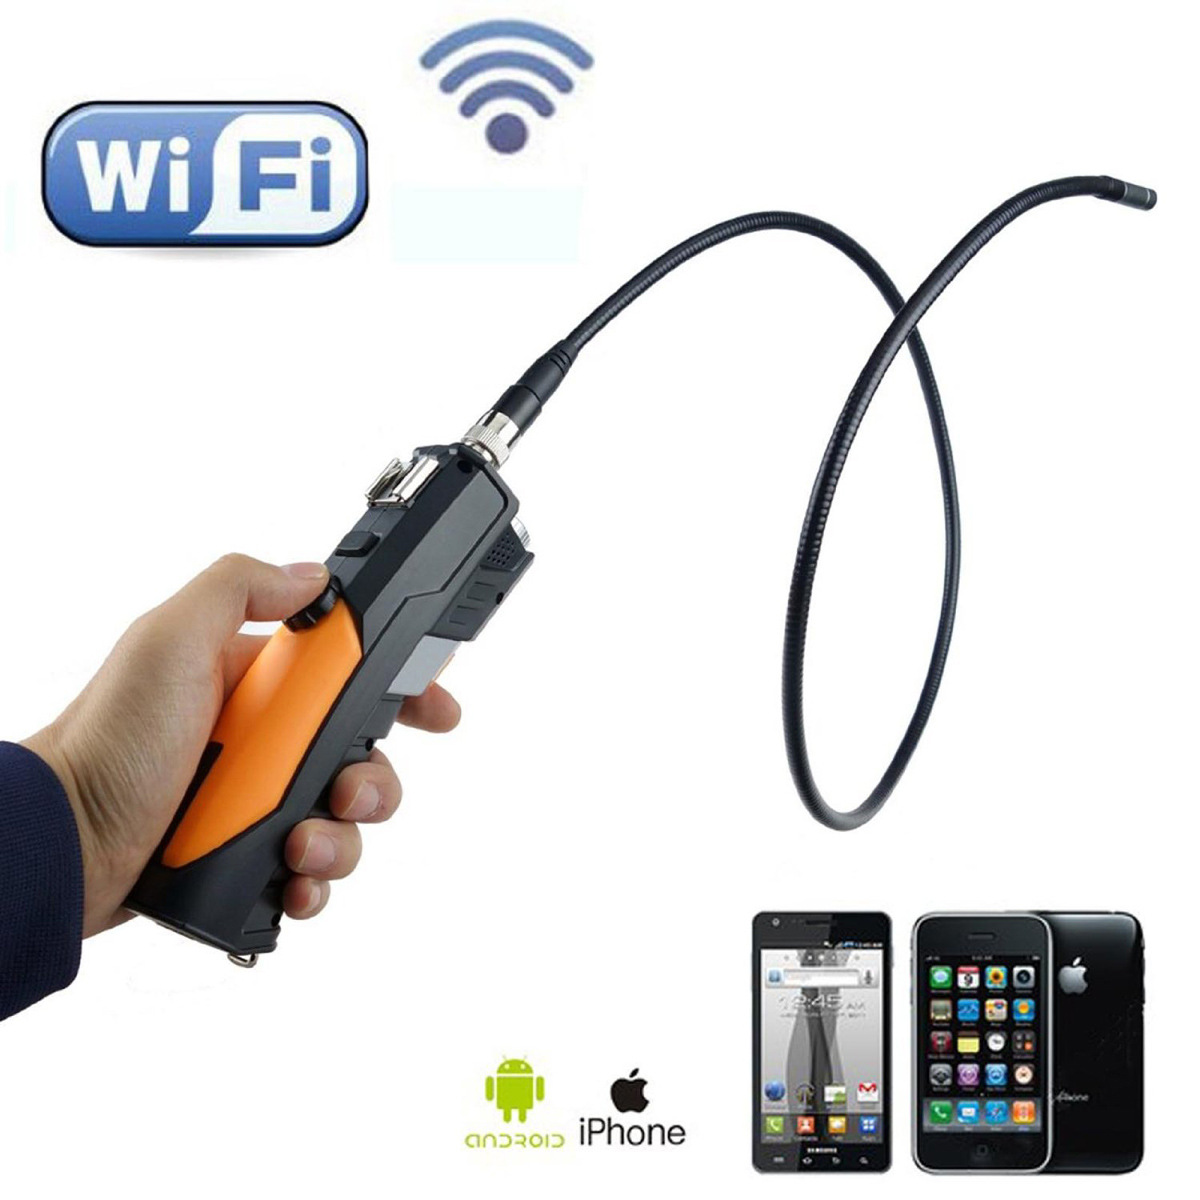 For 1M Hand-held WiFi HD720p Wireless Endoscope Video Borescope Camera 4 PC iOS Android Tablet + Side Mirror